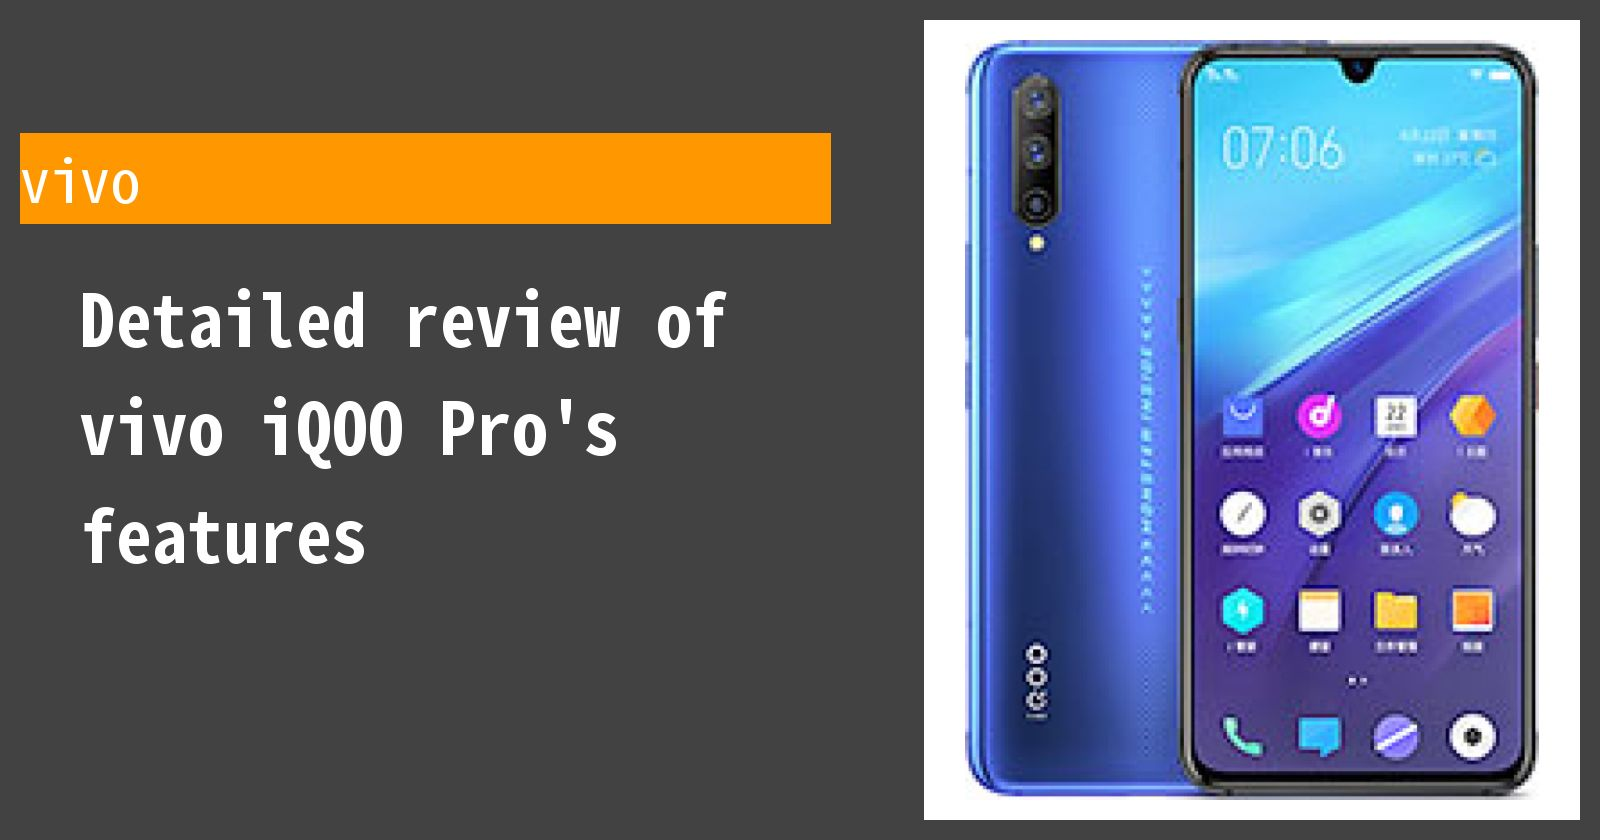 Detailed review of vivo iQOO Pro's features